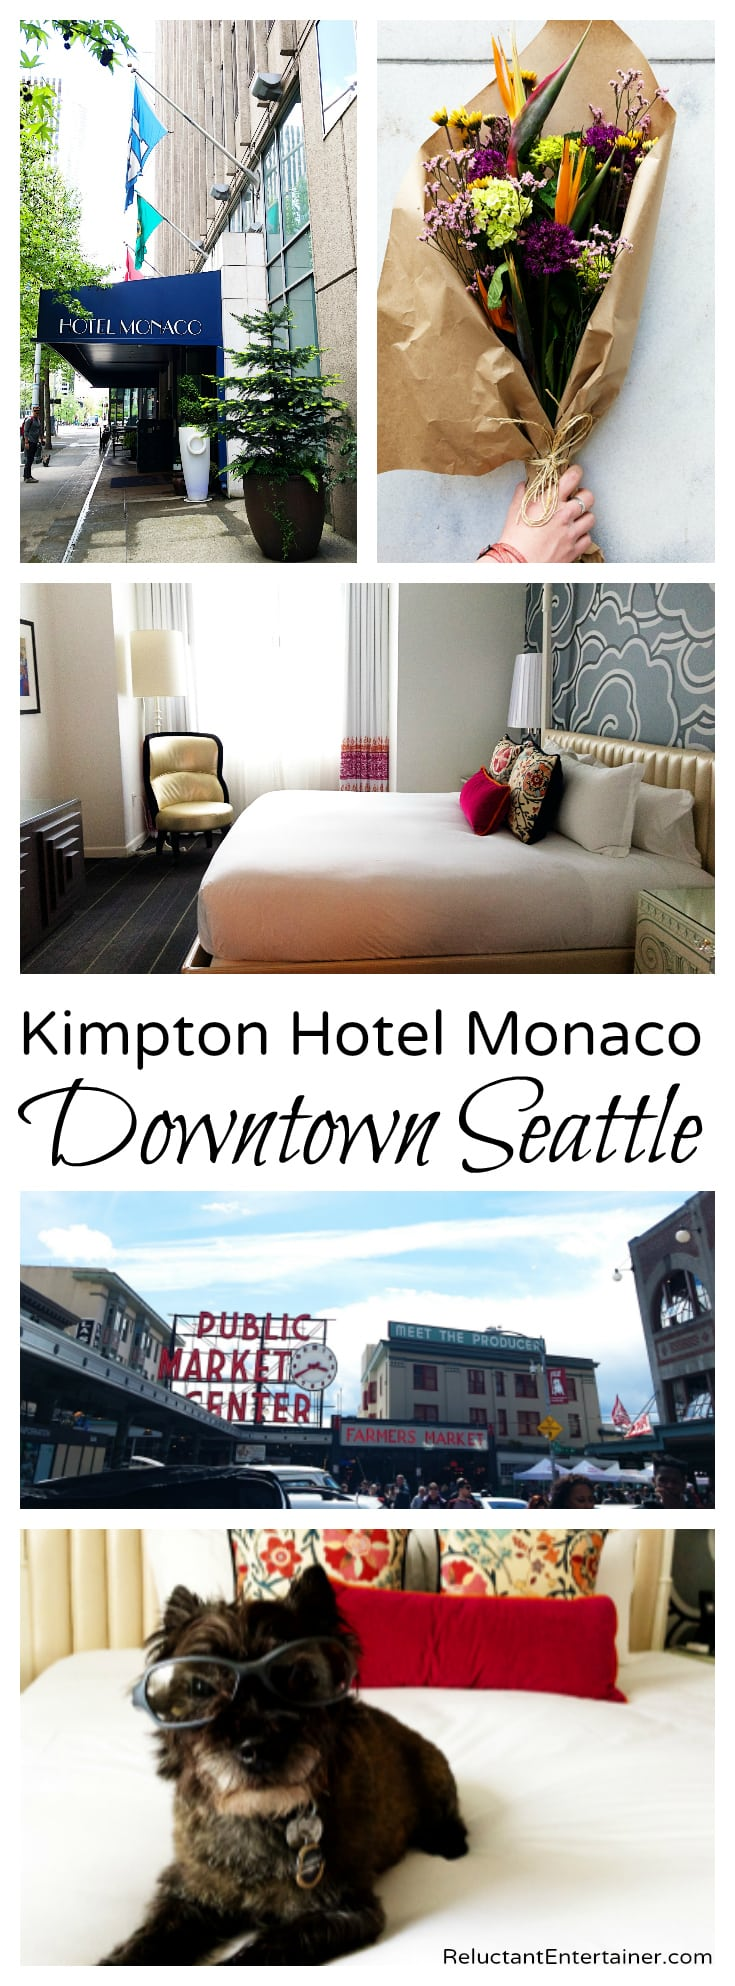 Kimpton Hotel Monaco Downtown Seattle